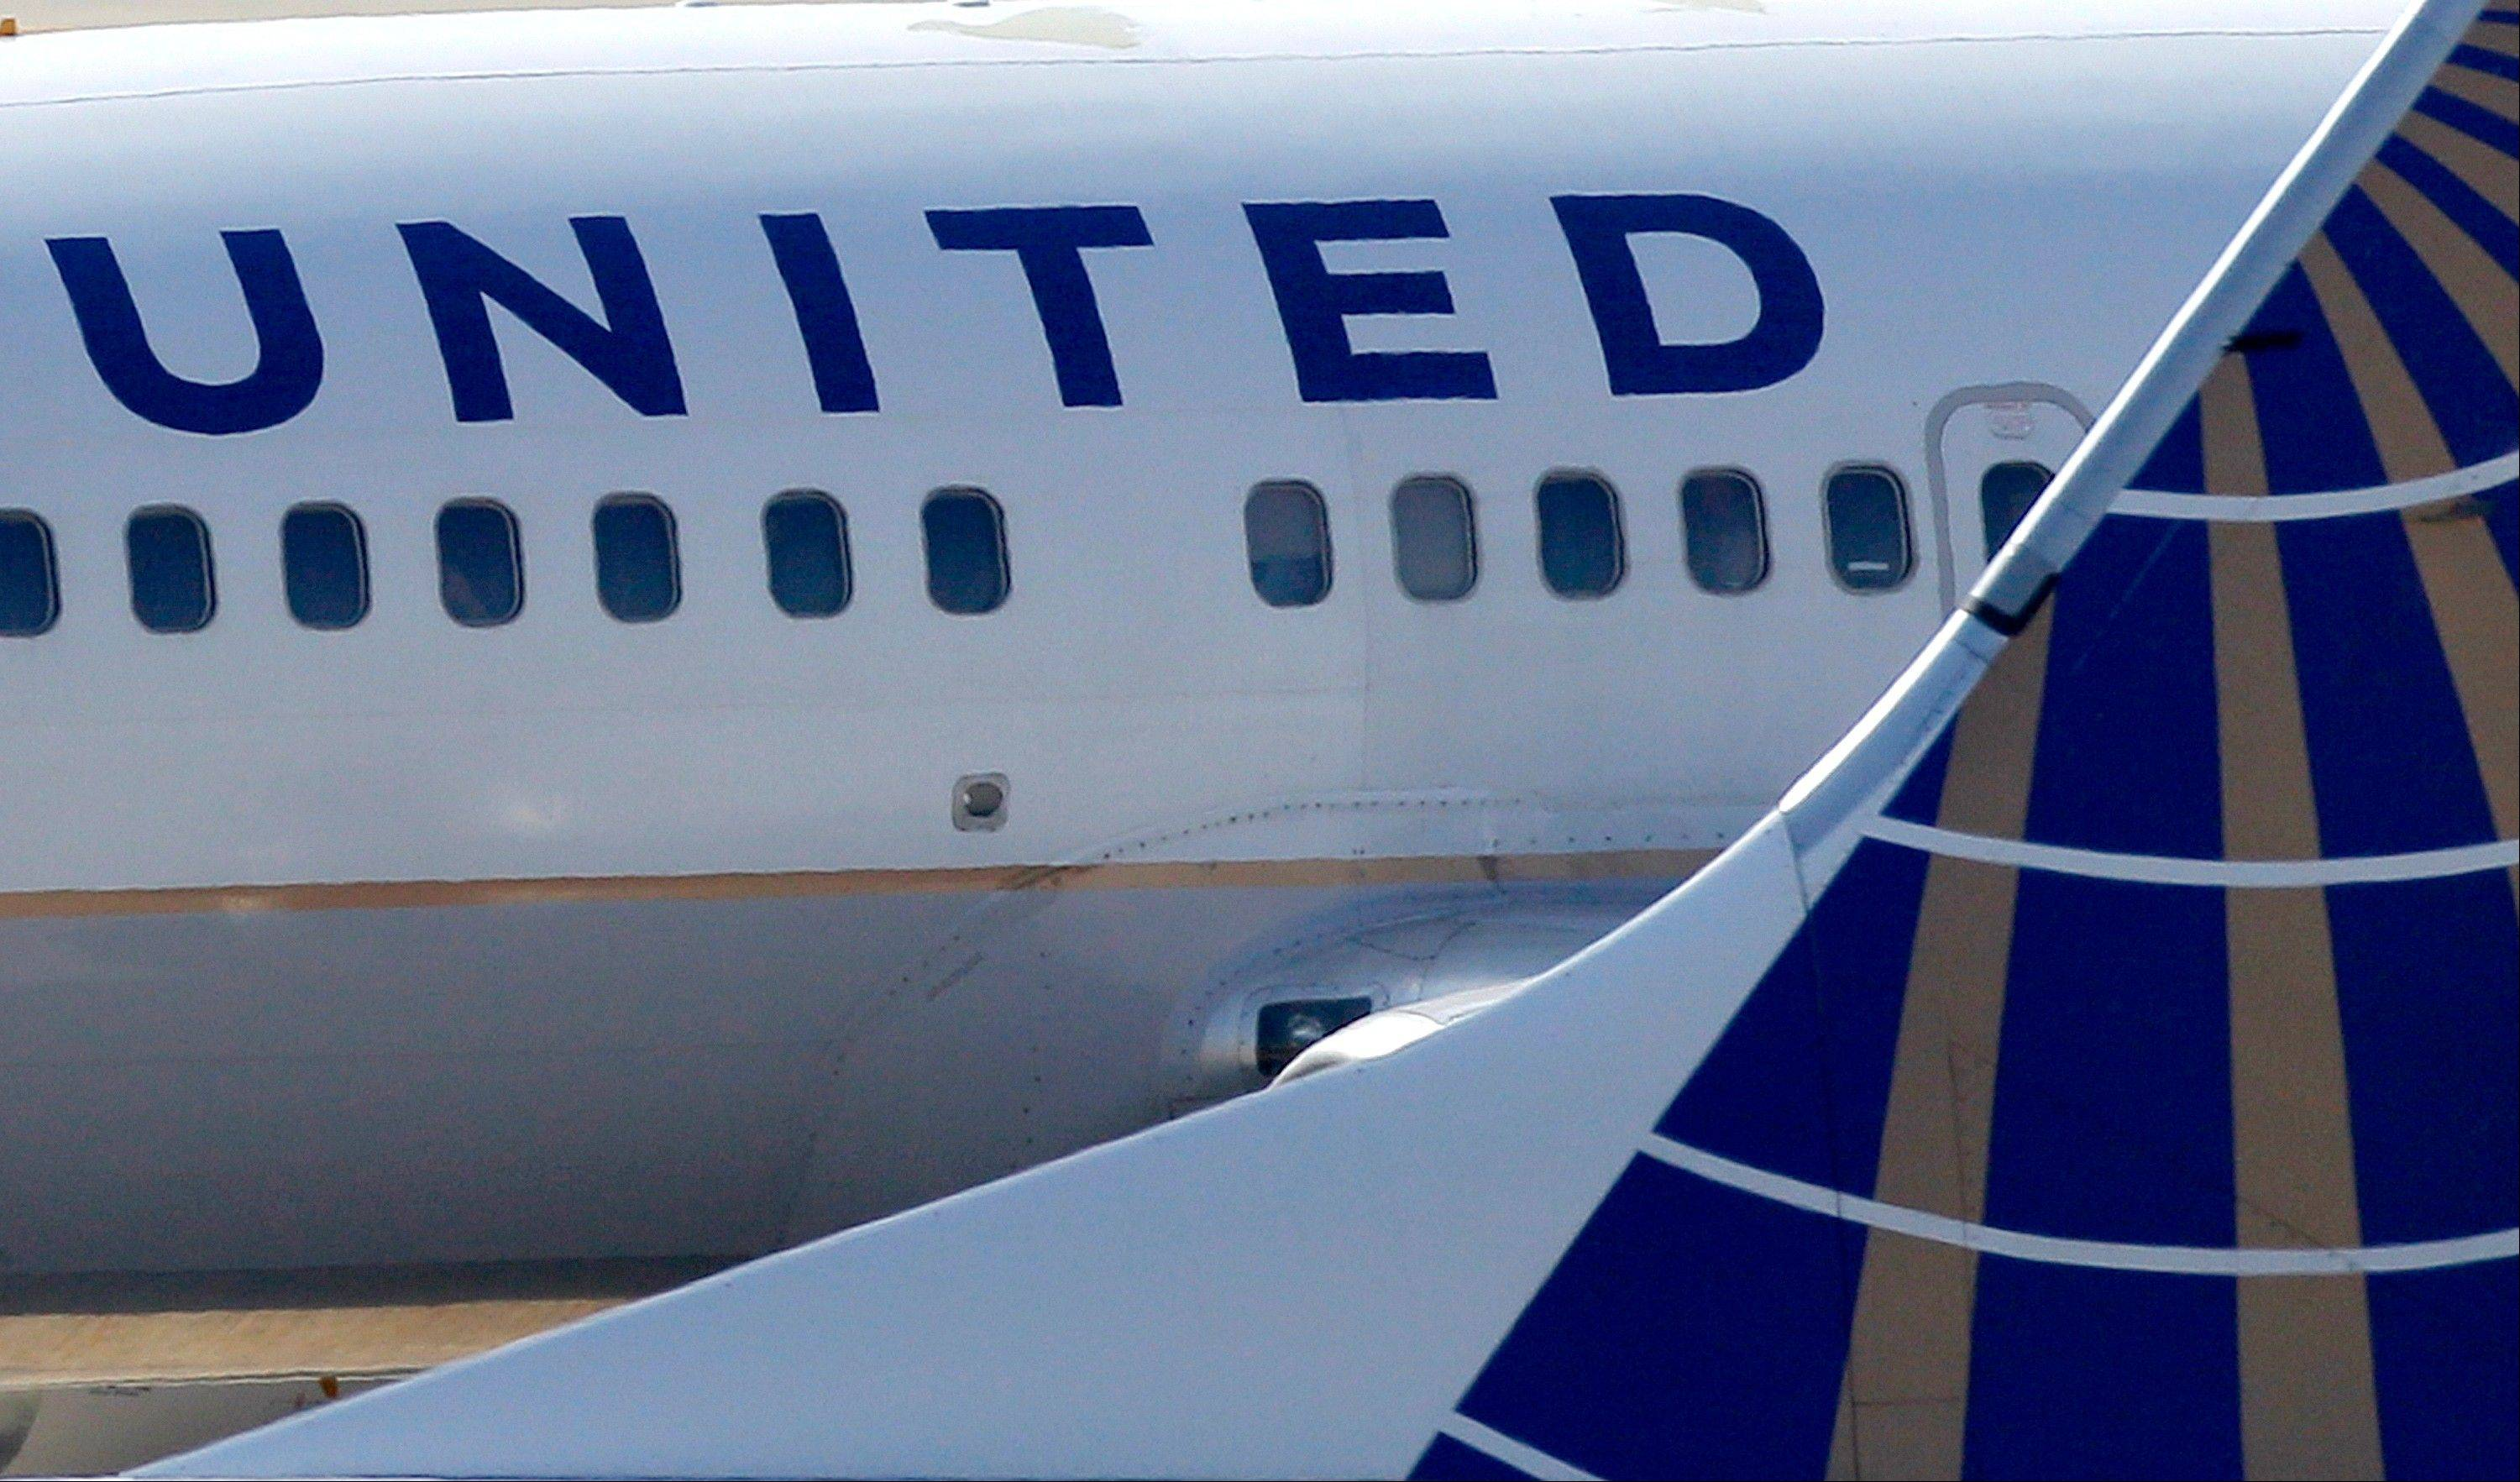 United Airlines will recall all of its nearly 600 pilots on furlough to address future staffing needs, the airline announced Thursday.